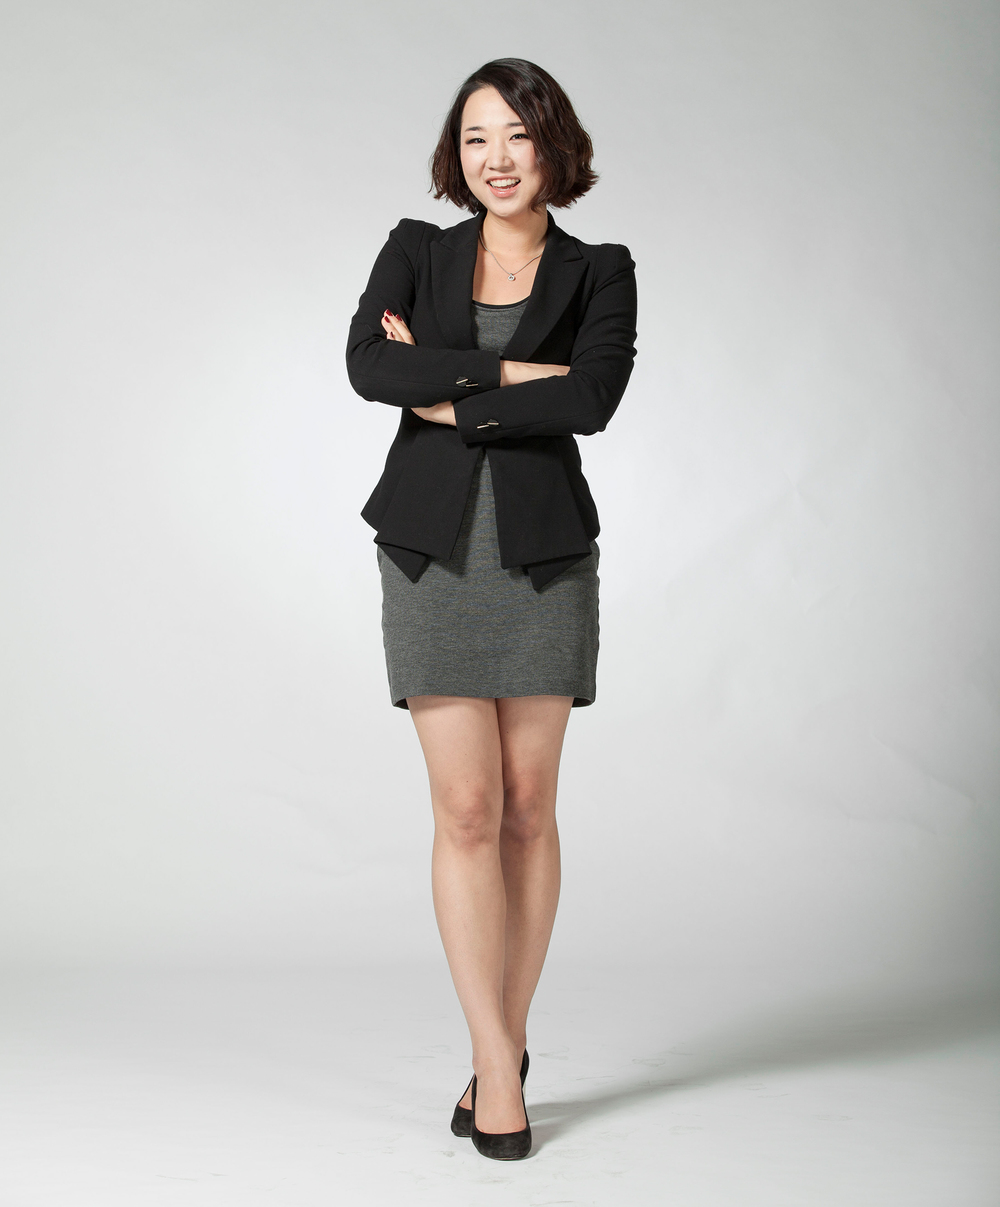 SONA LEE, HEAD PLANNER